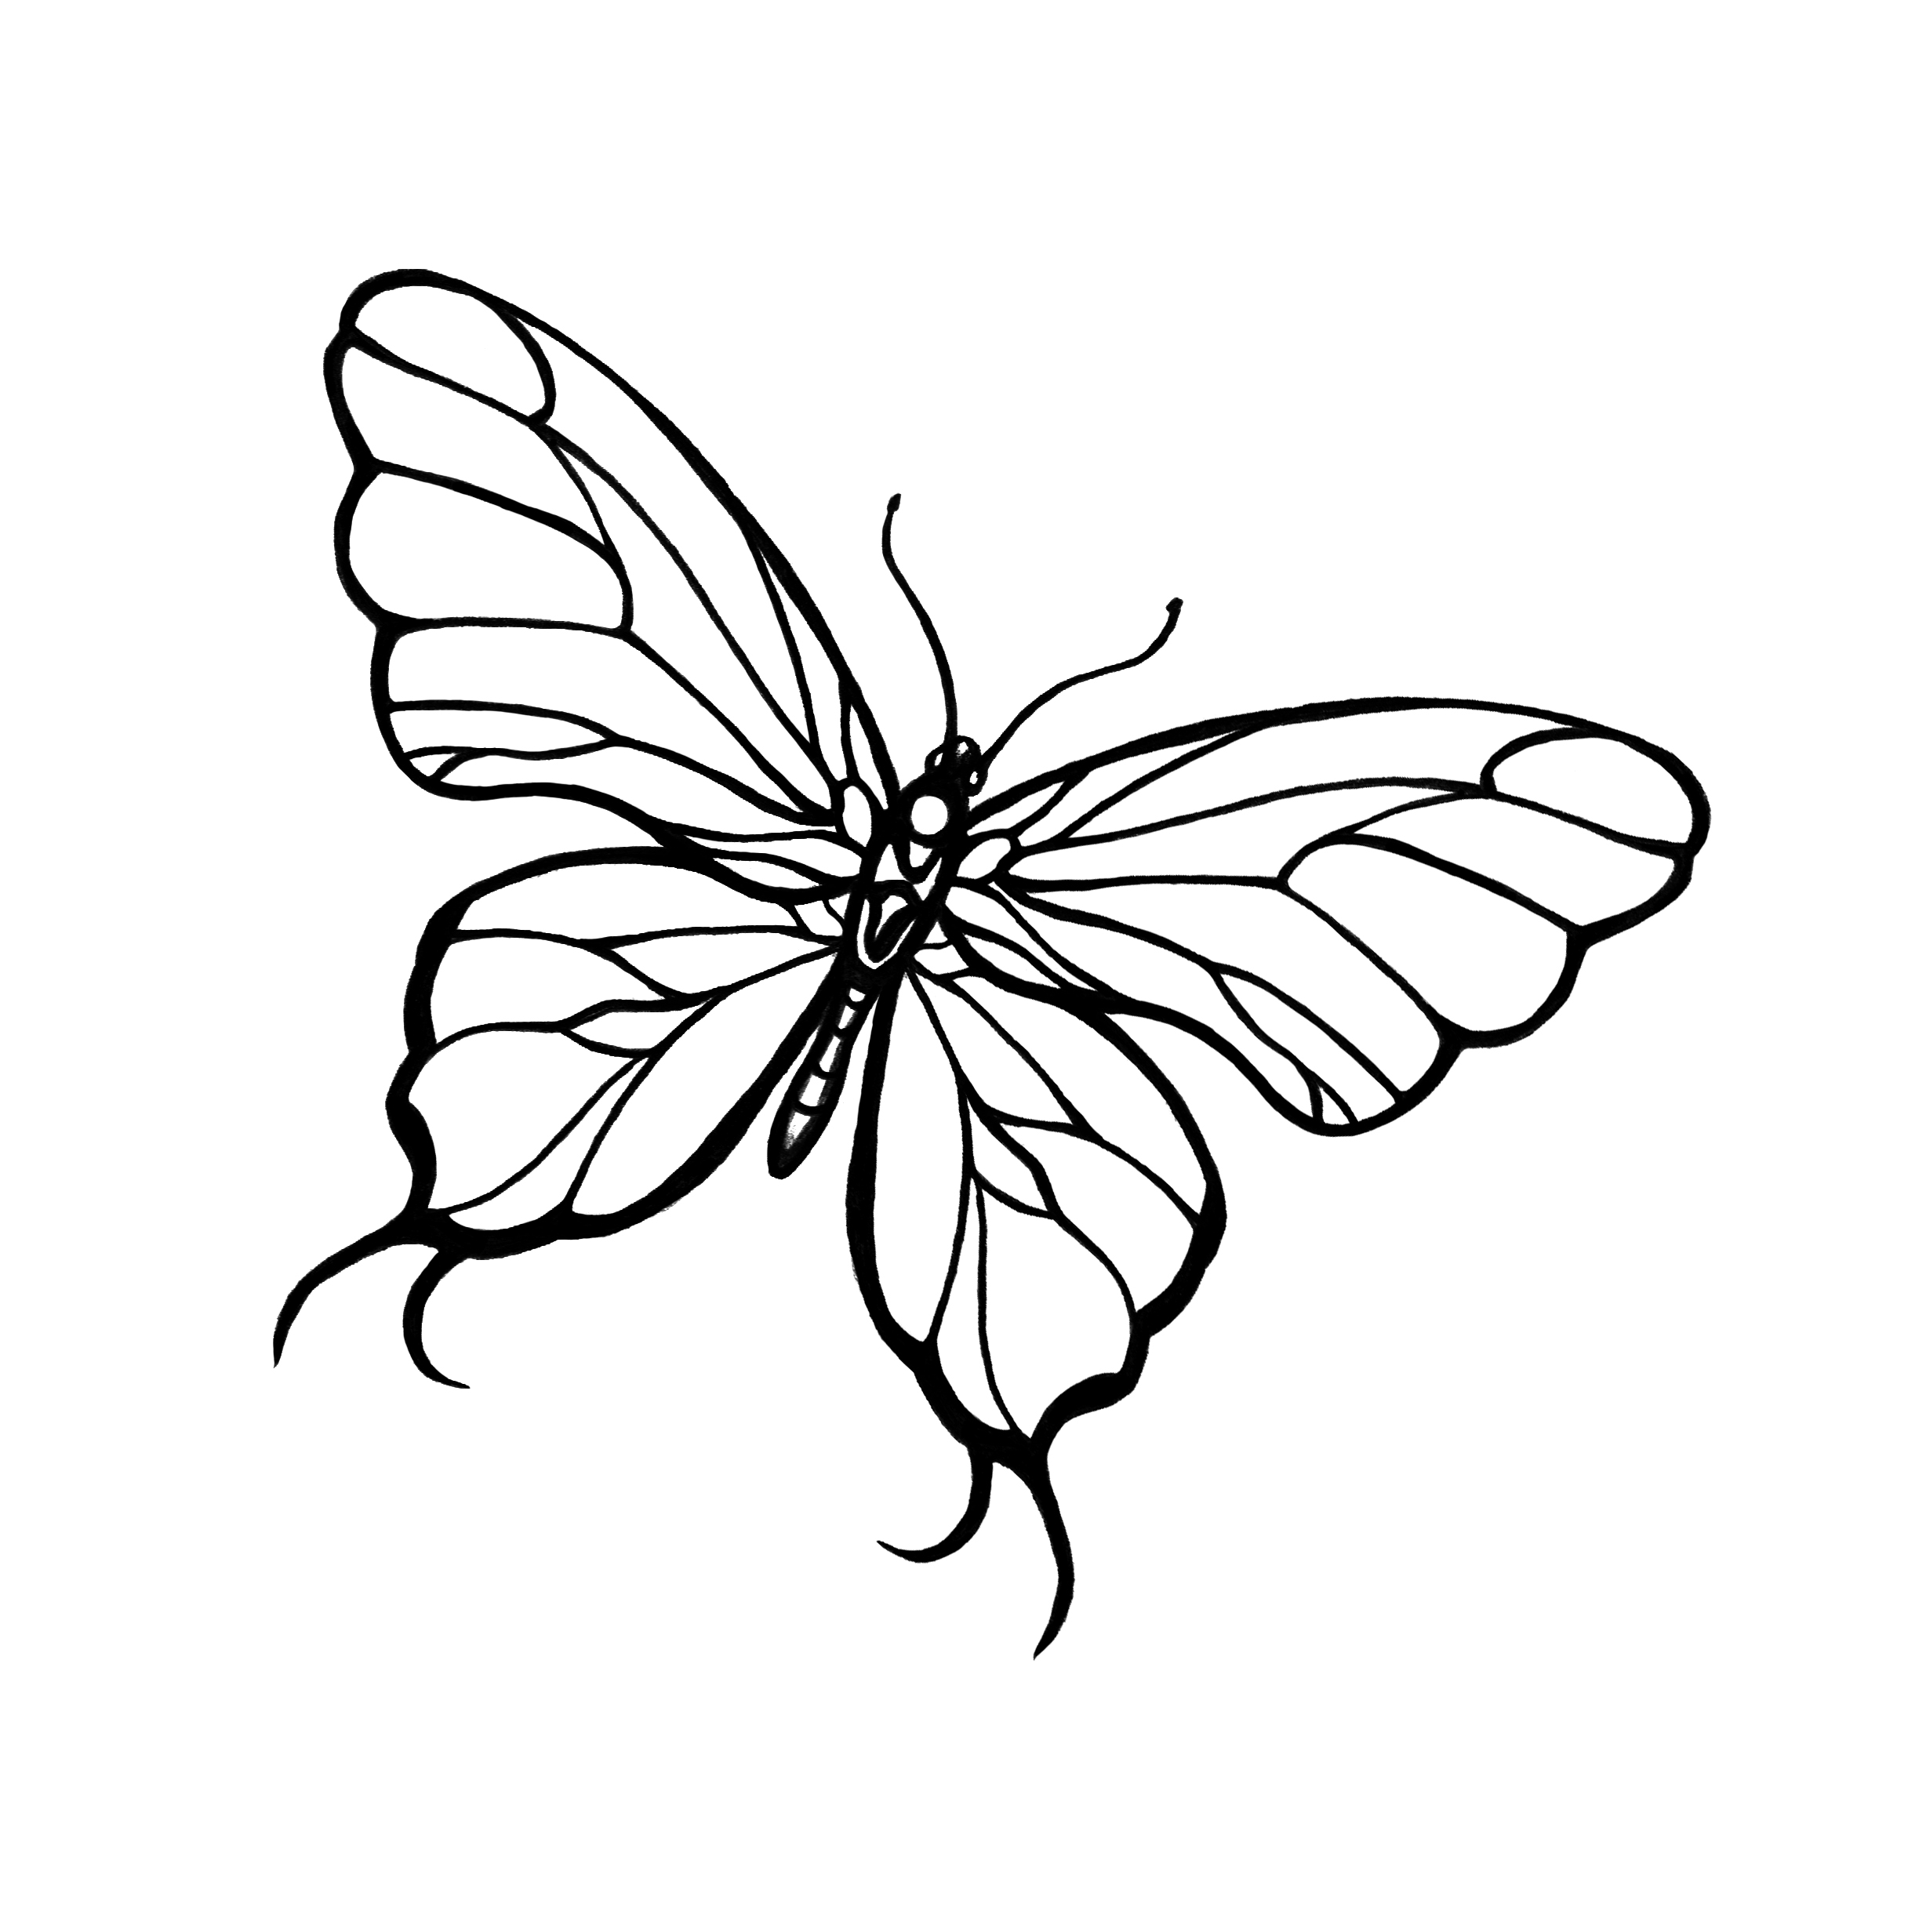 Simple black-line butterfly tattoo design - Tattooimages.biz